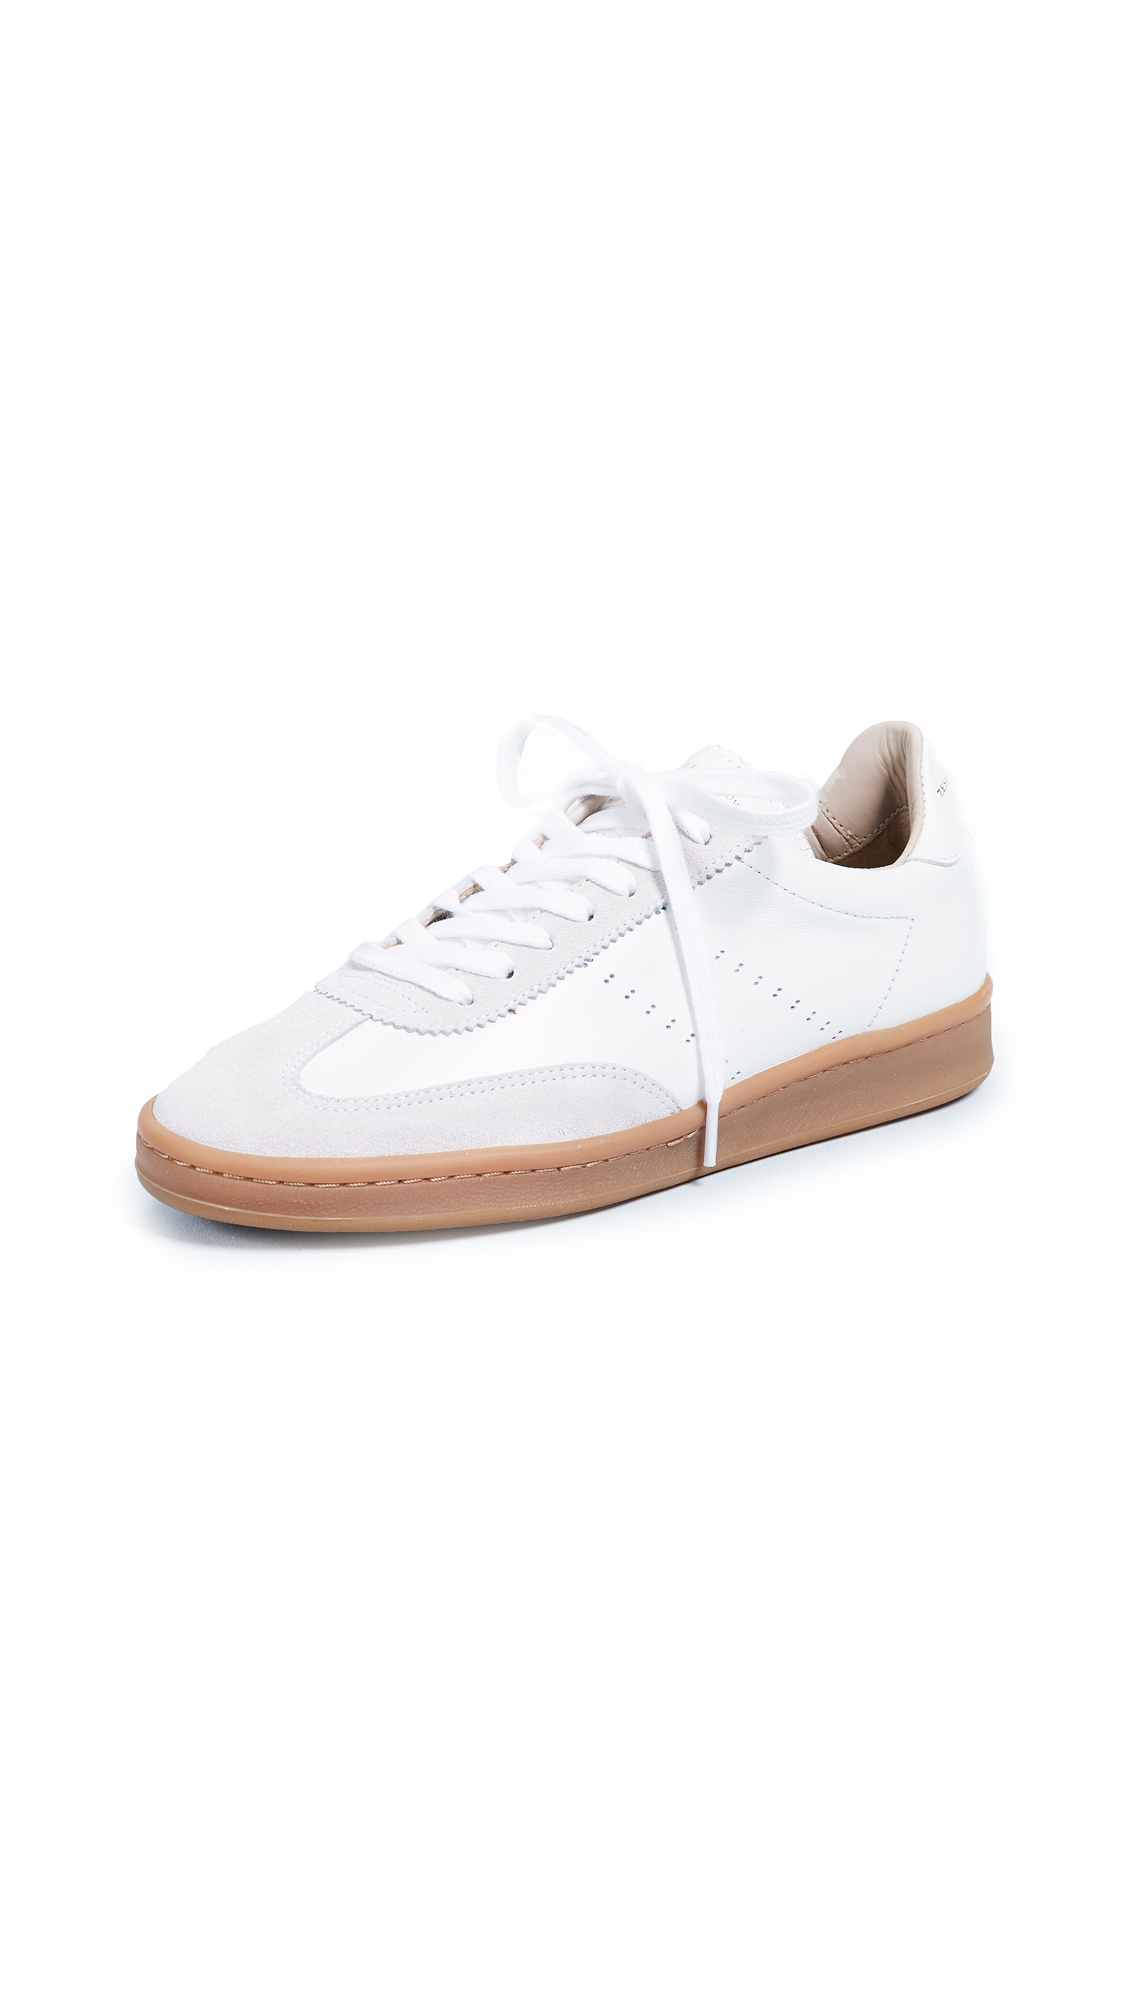 Zespa Laceup Sneakers